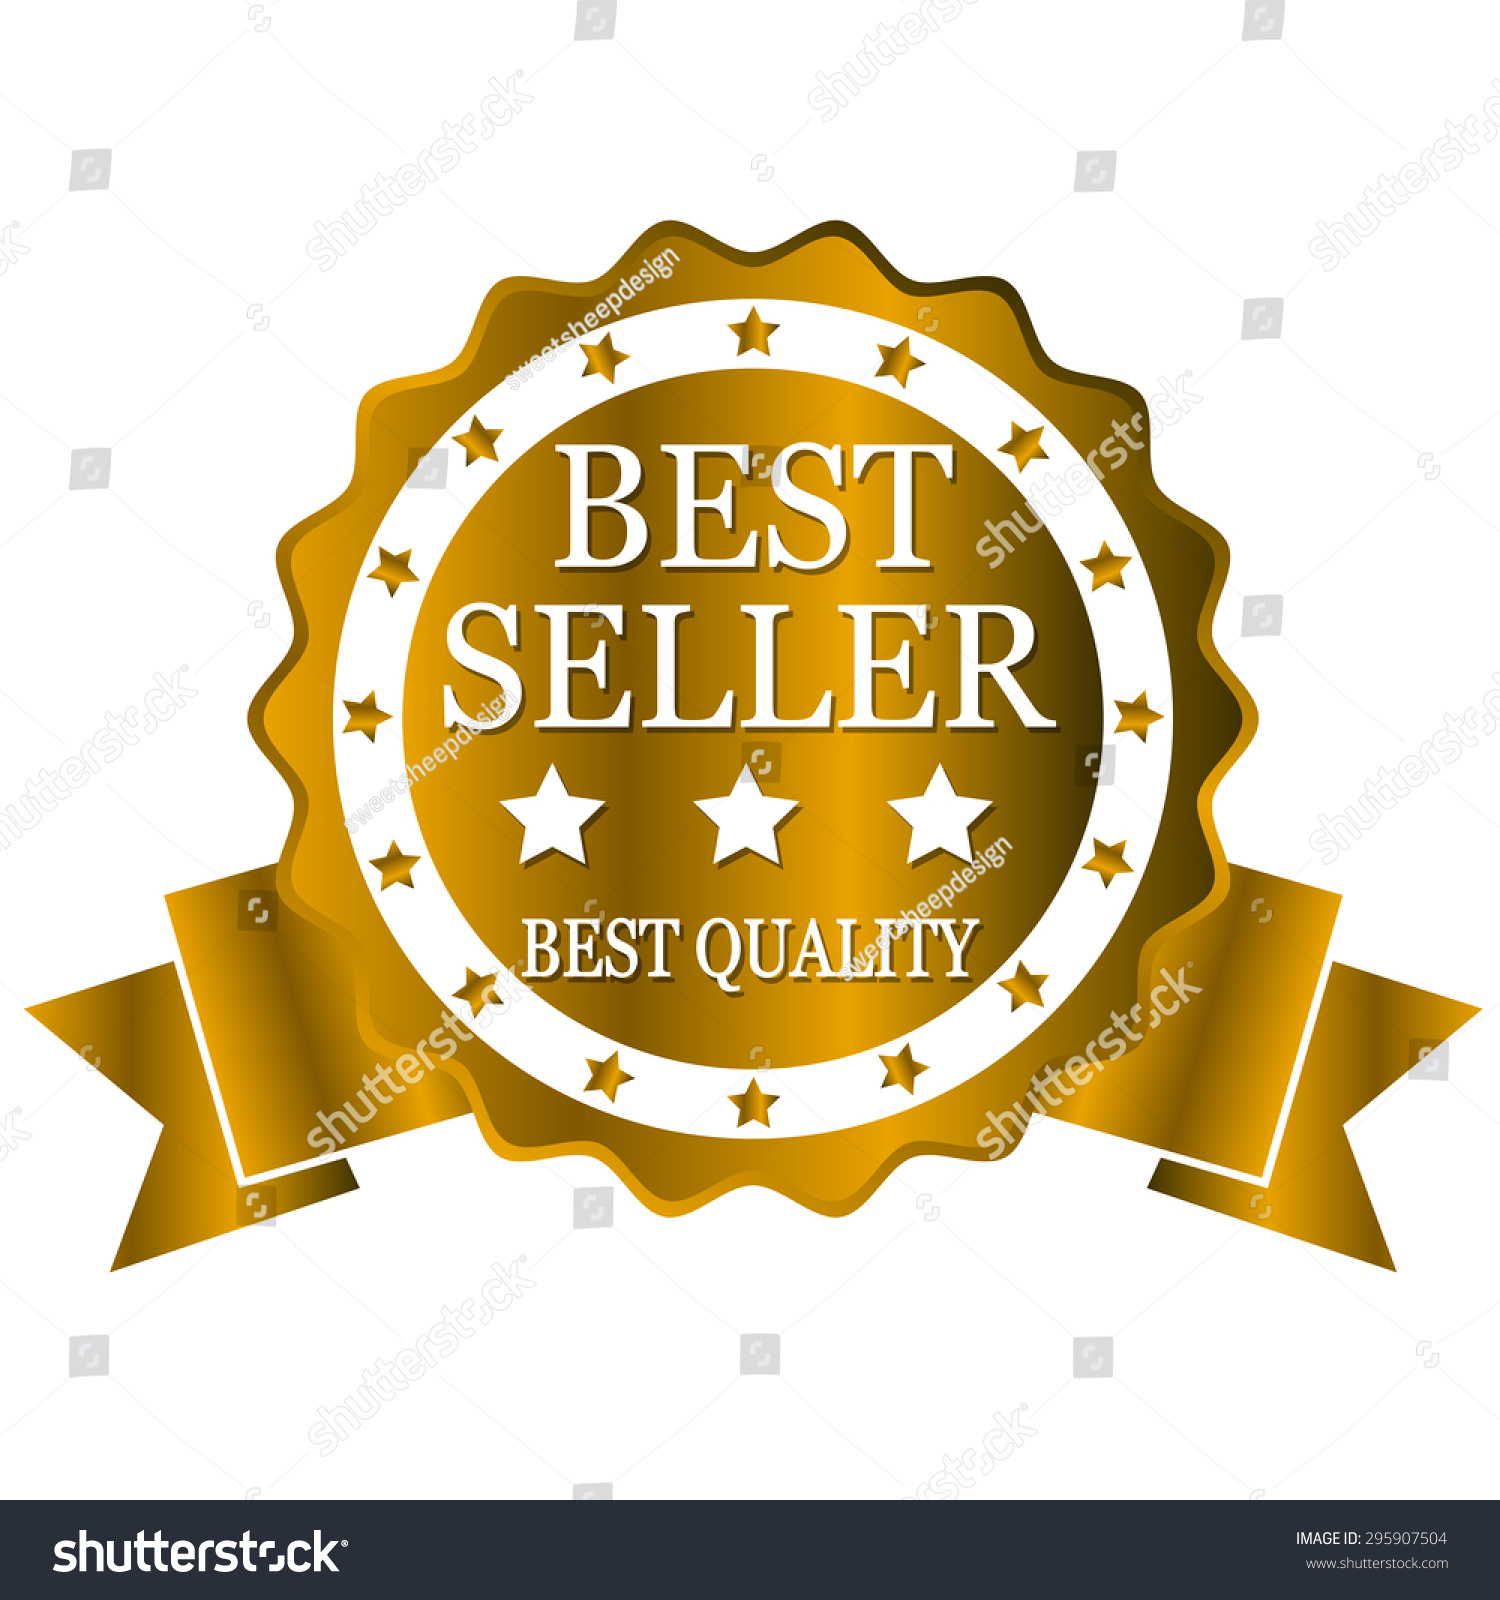 gold depositphotos word white background rendering photo high quality on stock illustration